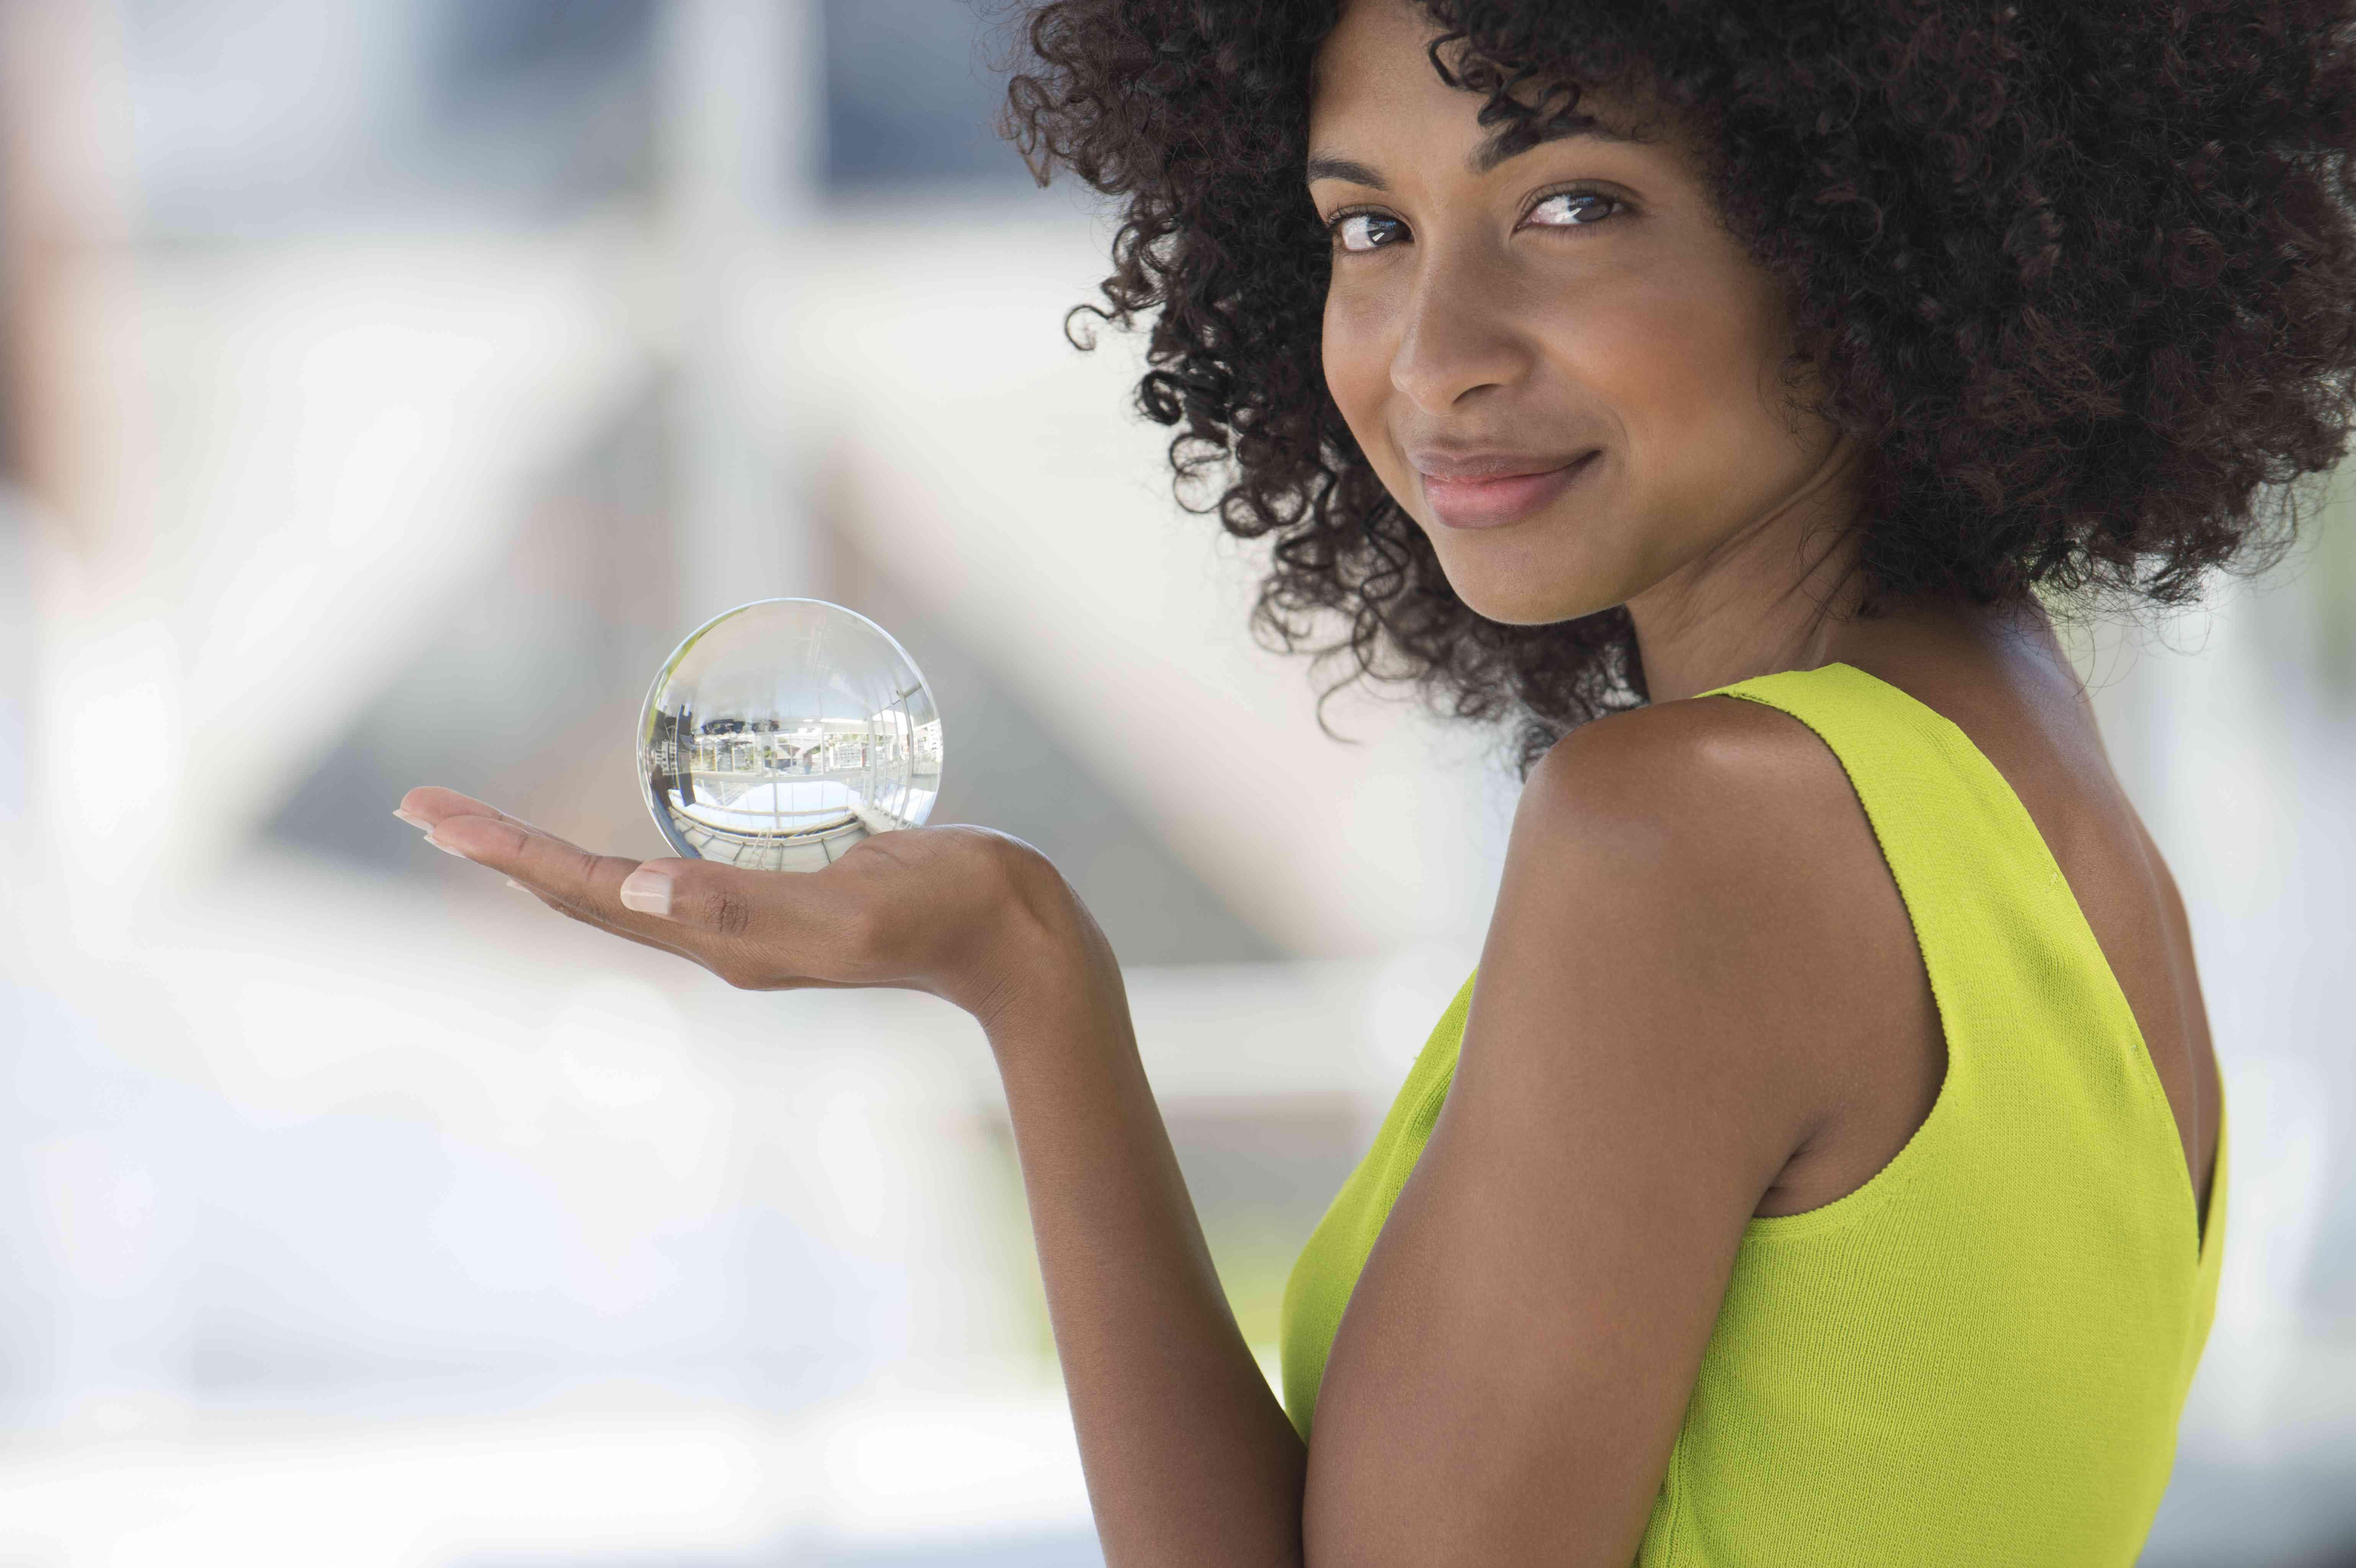 Portrait of a woman holding a crystal ball